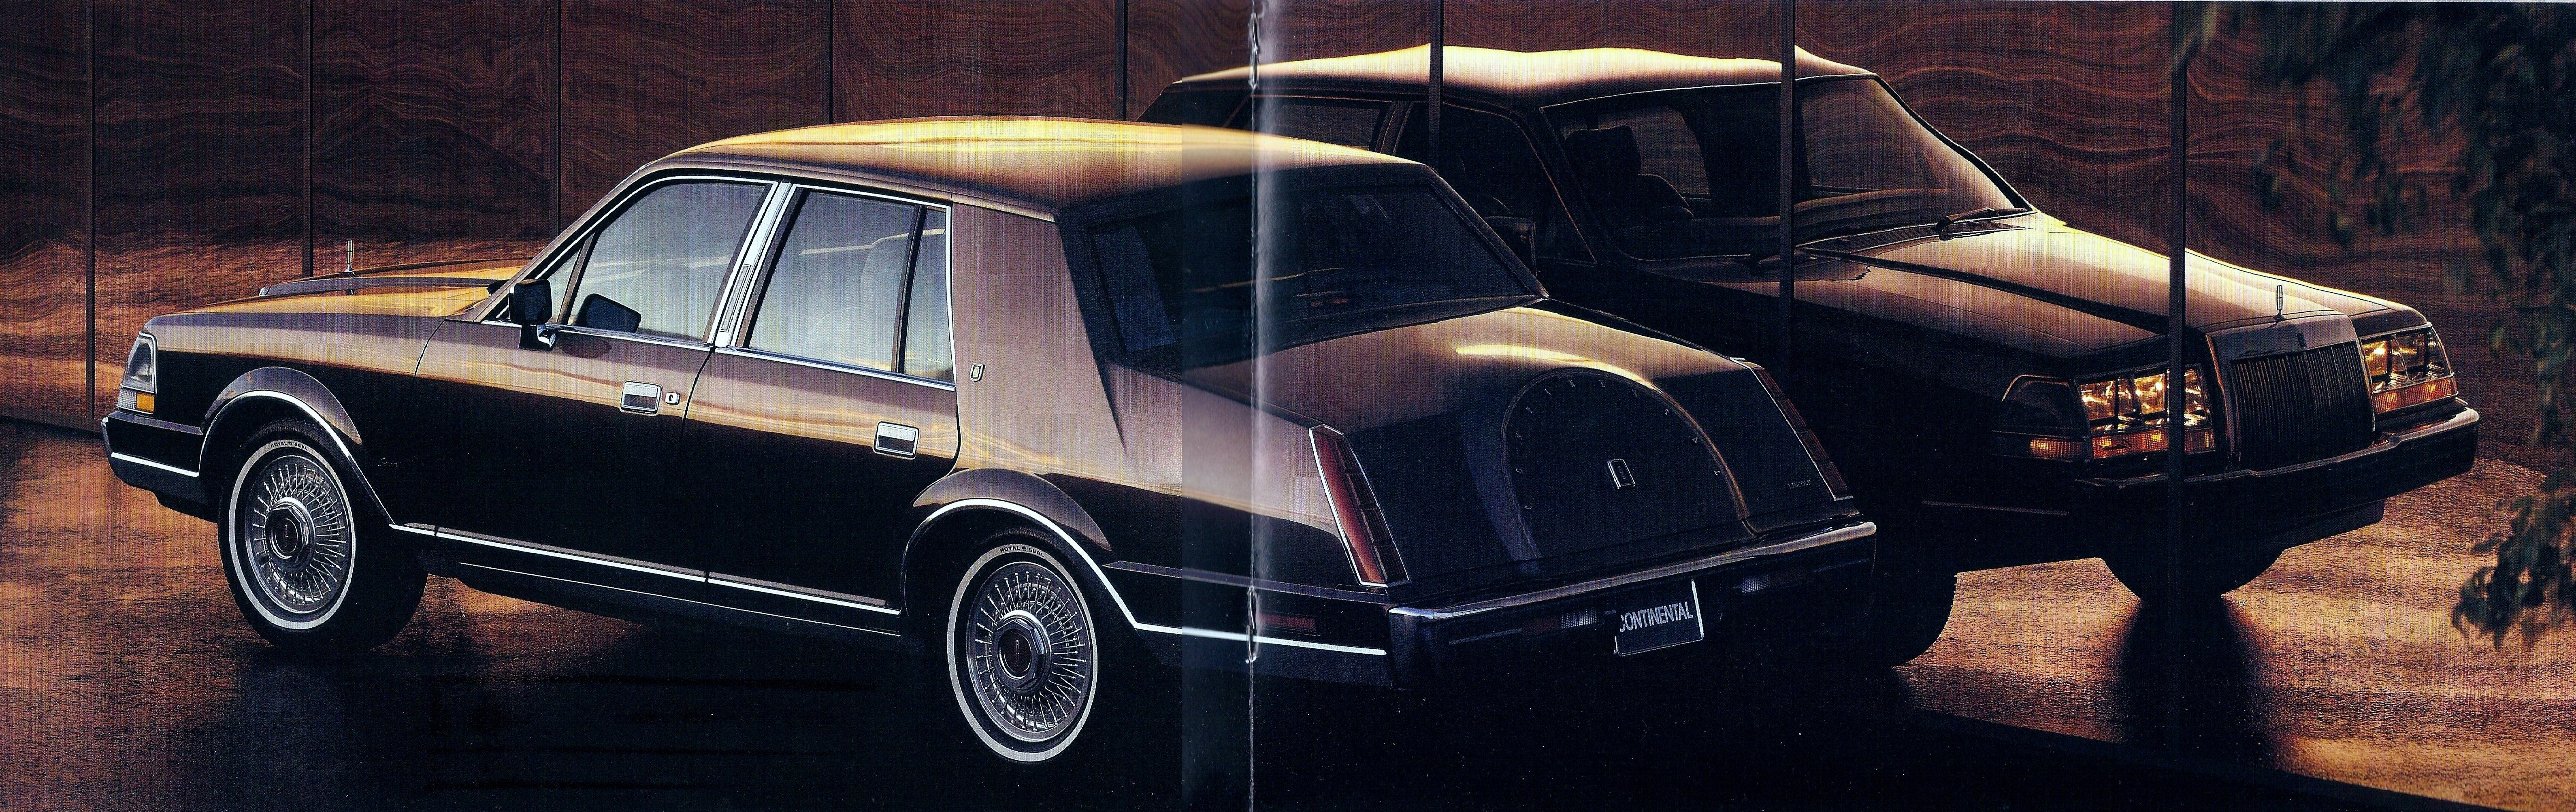 curbside classic 1990 92 lincoln mark vii lsc se not your uncle max s mark. Black Bedroom Furniture Sets. Home Design Ideas